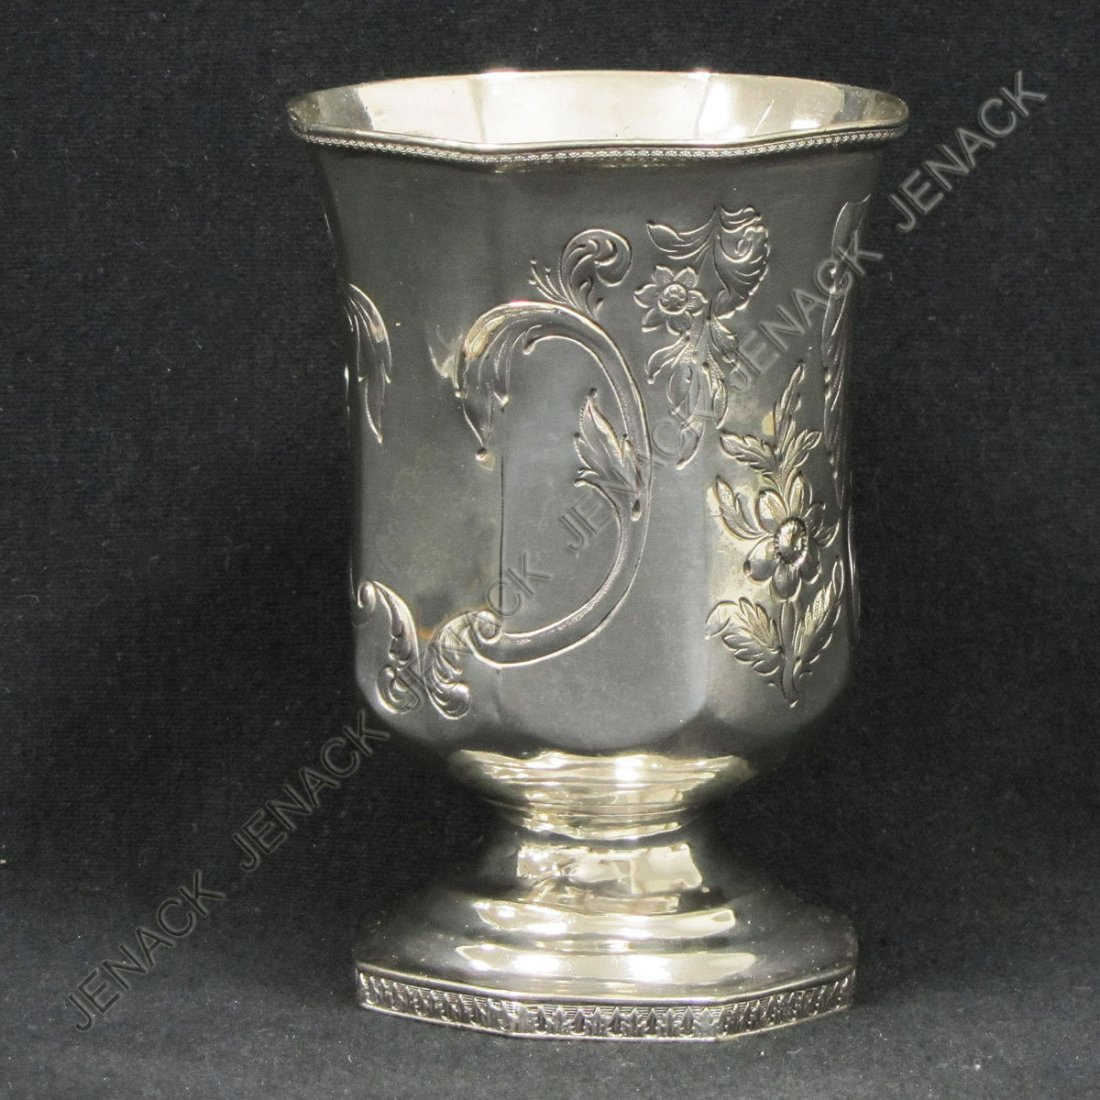 170: SEYMOUR HOYT SILVER FOOTED ENGRAVED CUP, C.1840